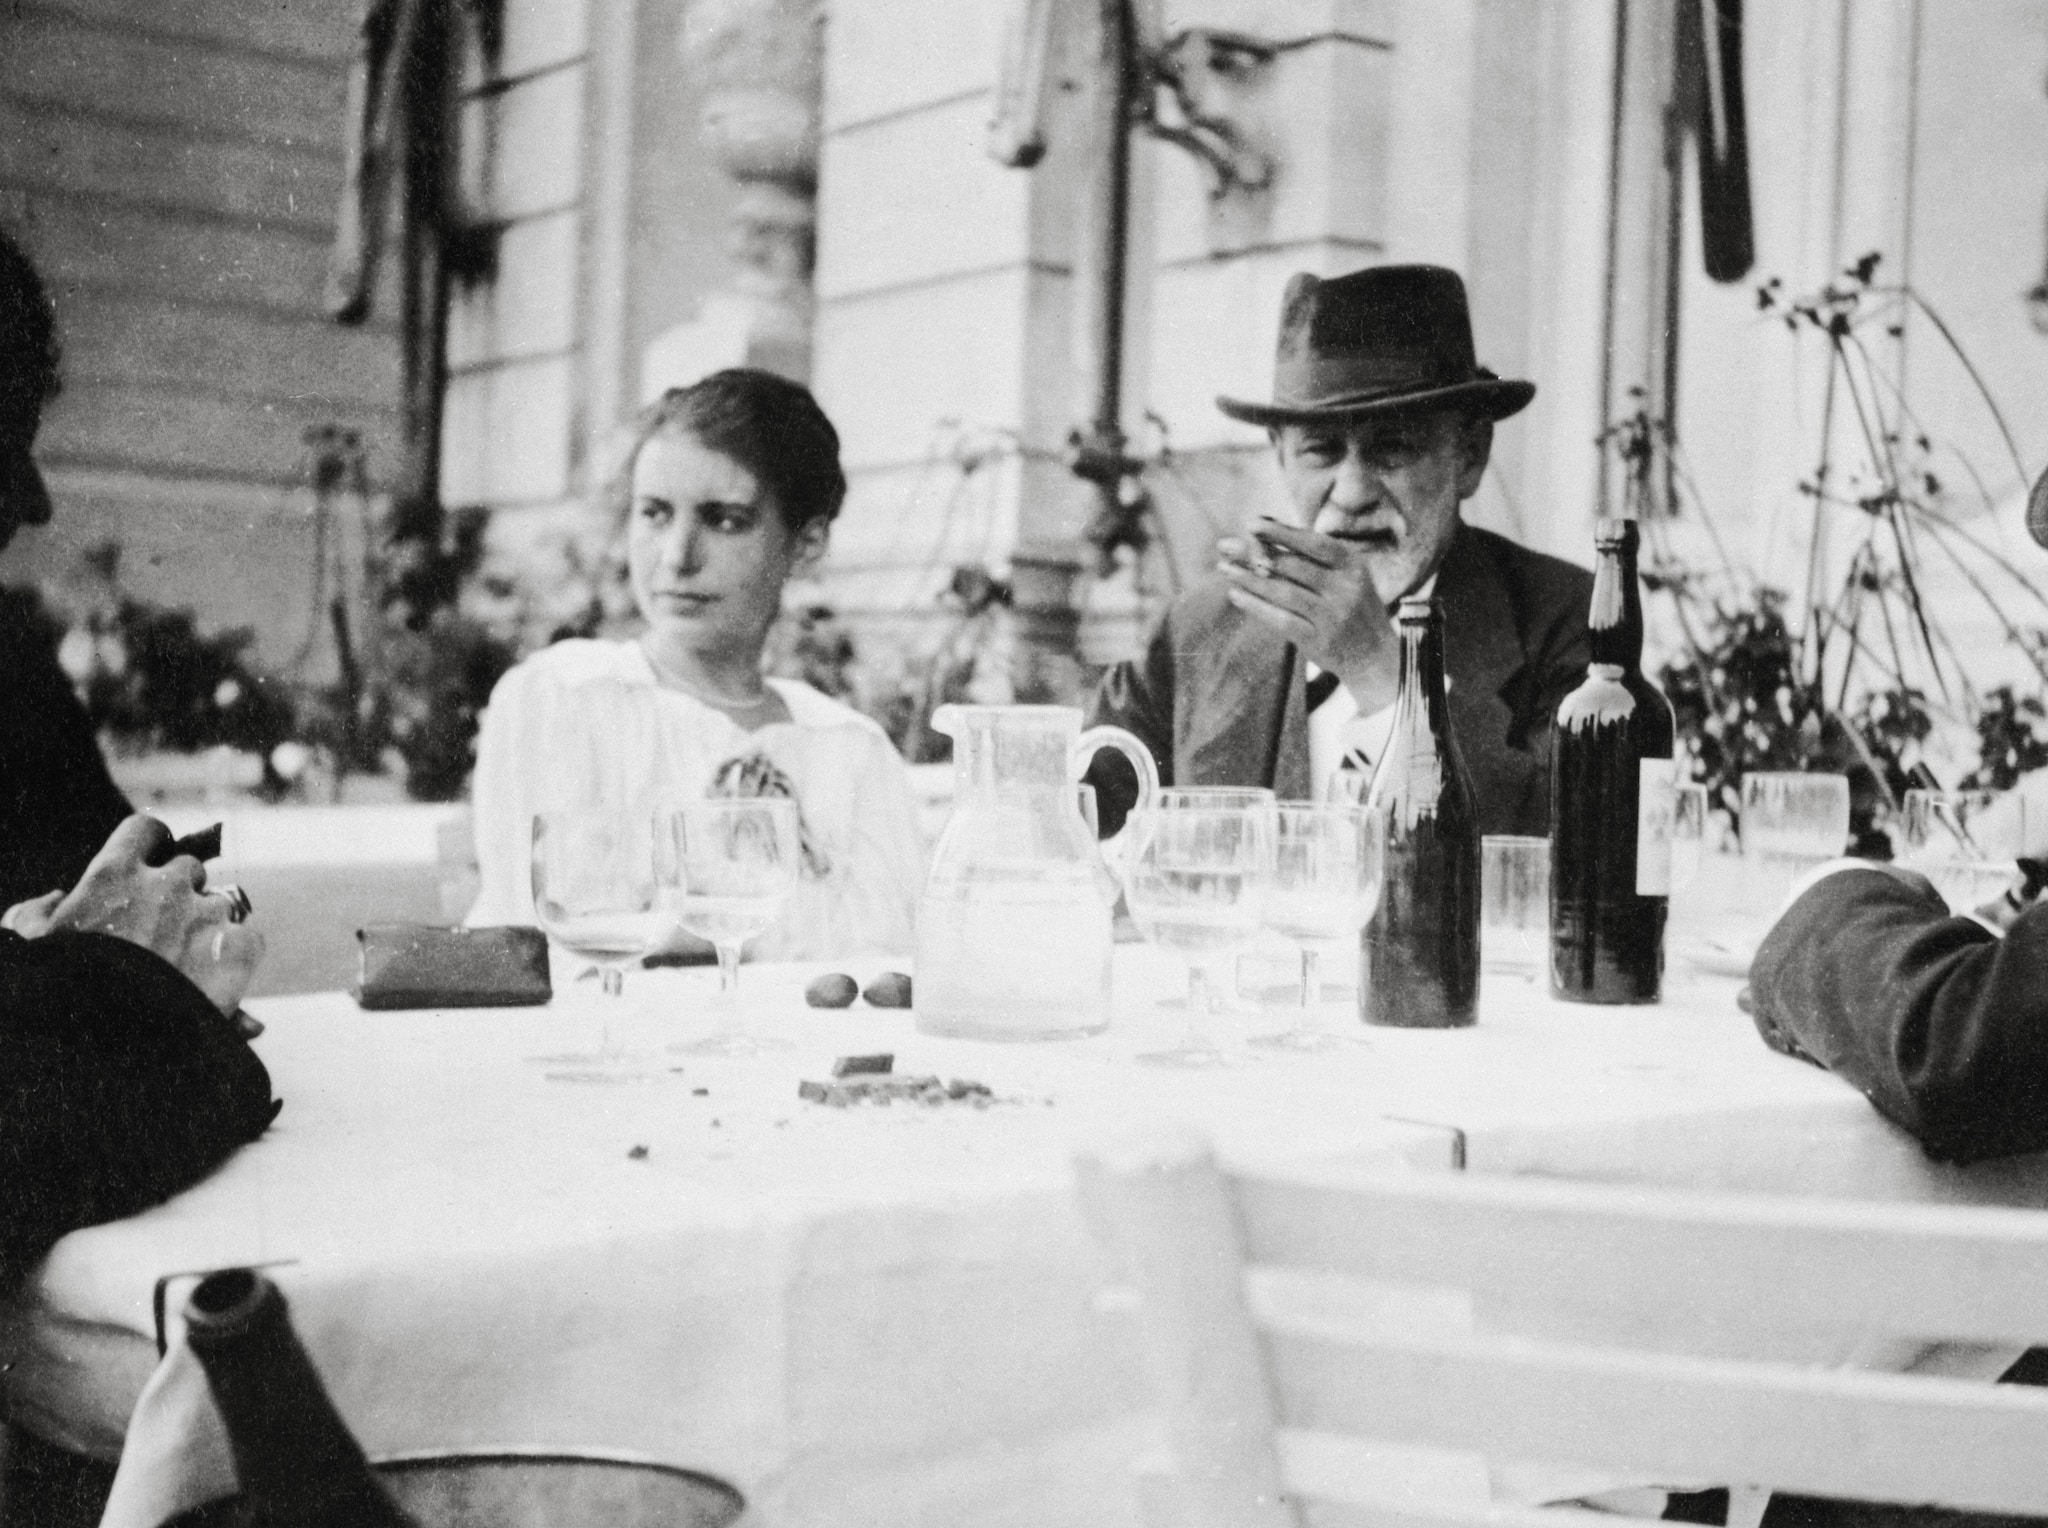 120 years of psychoanalysis: On Freud's footsteps in Vienna